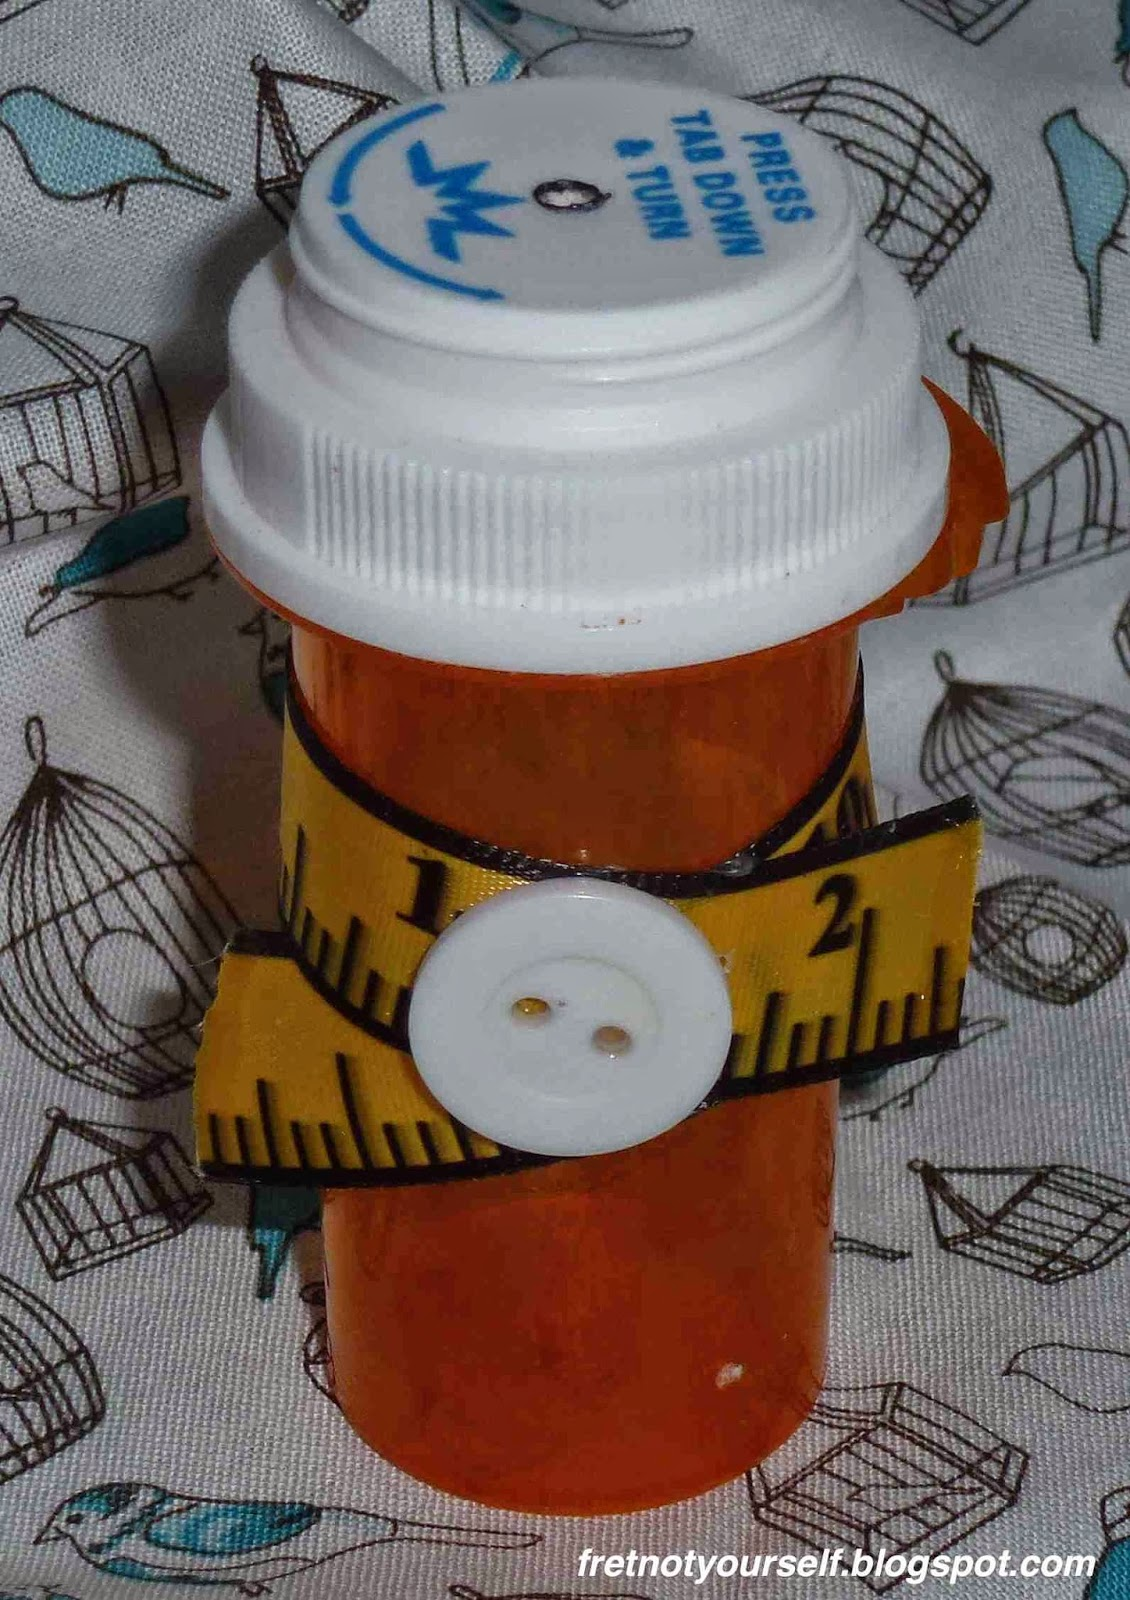 A small pill box is used to safely store used pins and needles